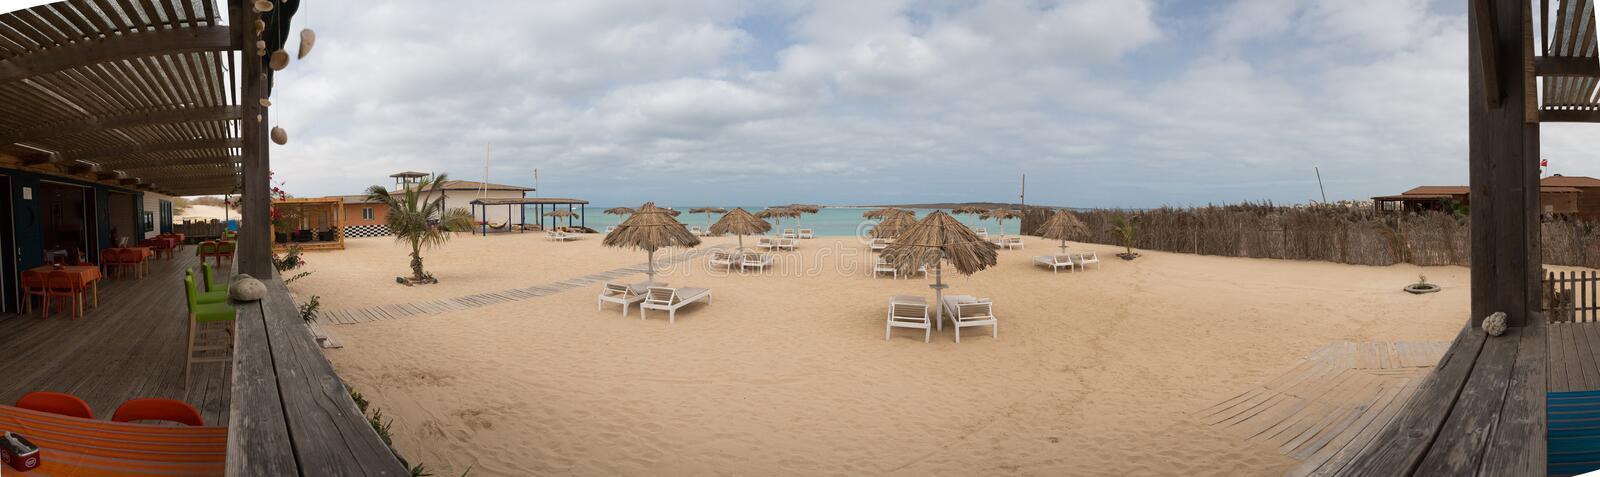 Panoramic view beach of island Boa Vista, Cape Verde. Panoramic view from restaurant to the beach, Boa Vista Island, Cape Verde. Collected from 17 photos royalty free stock photo